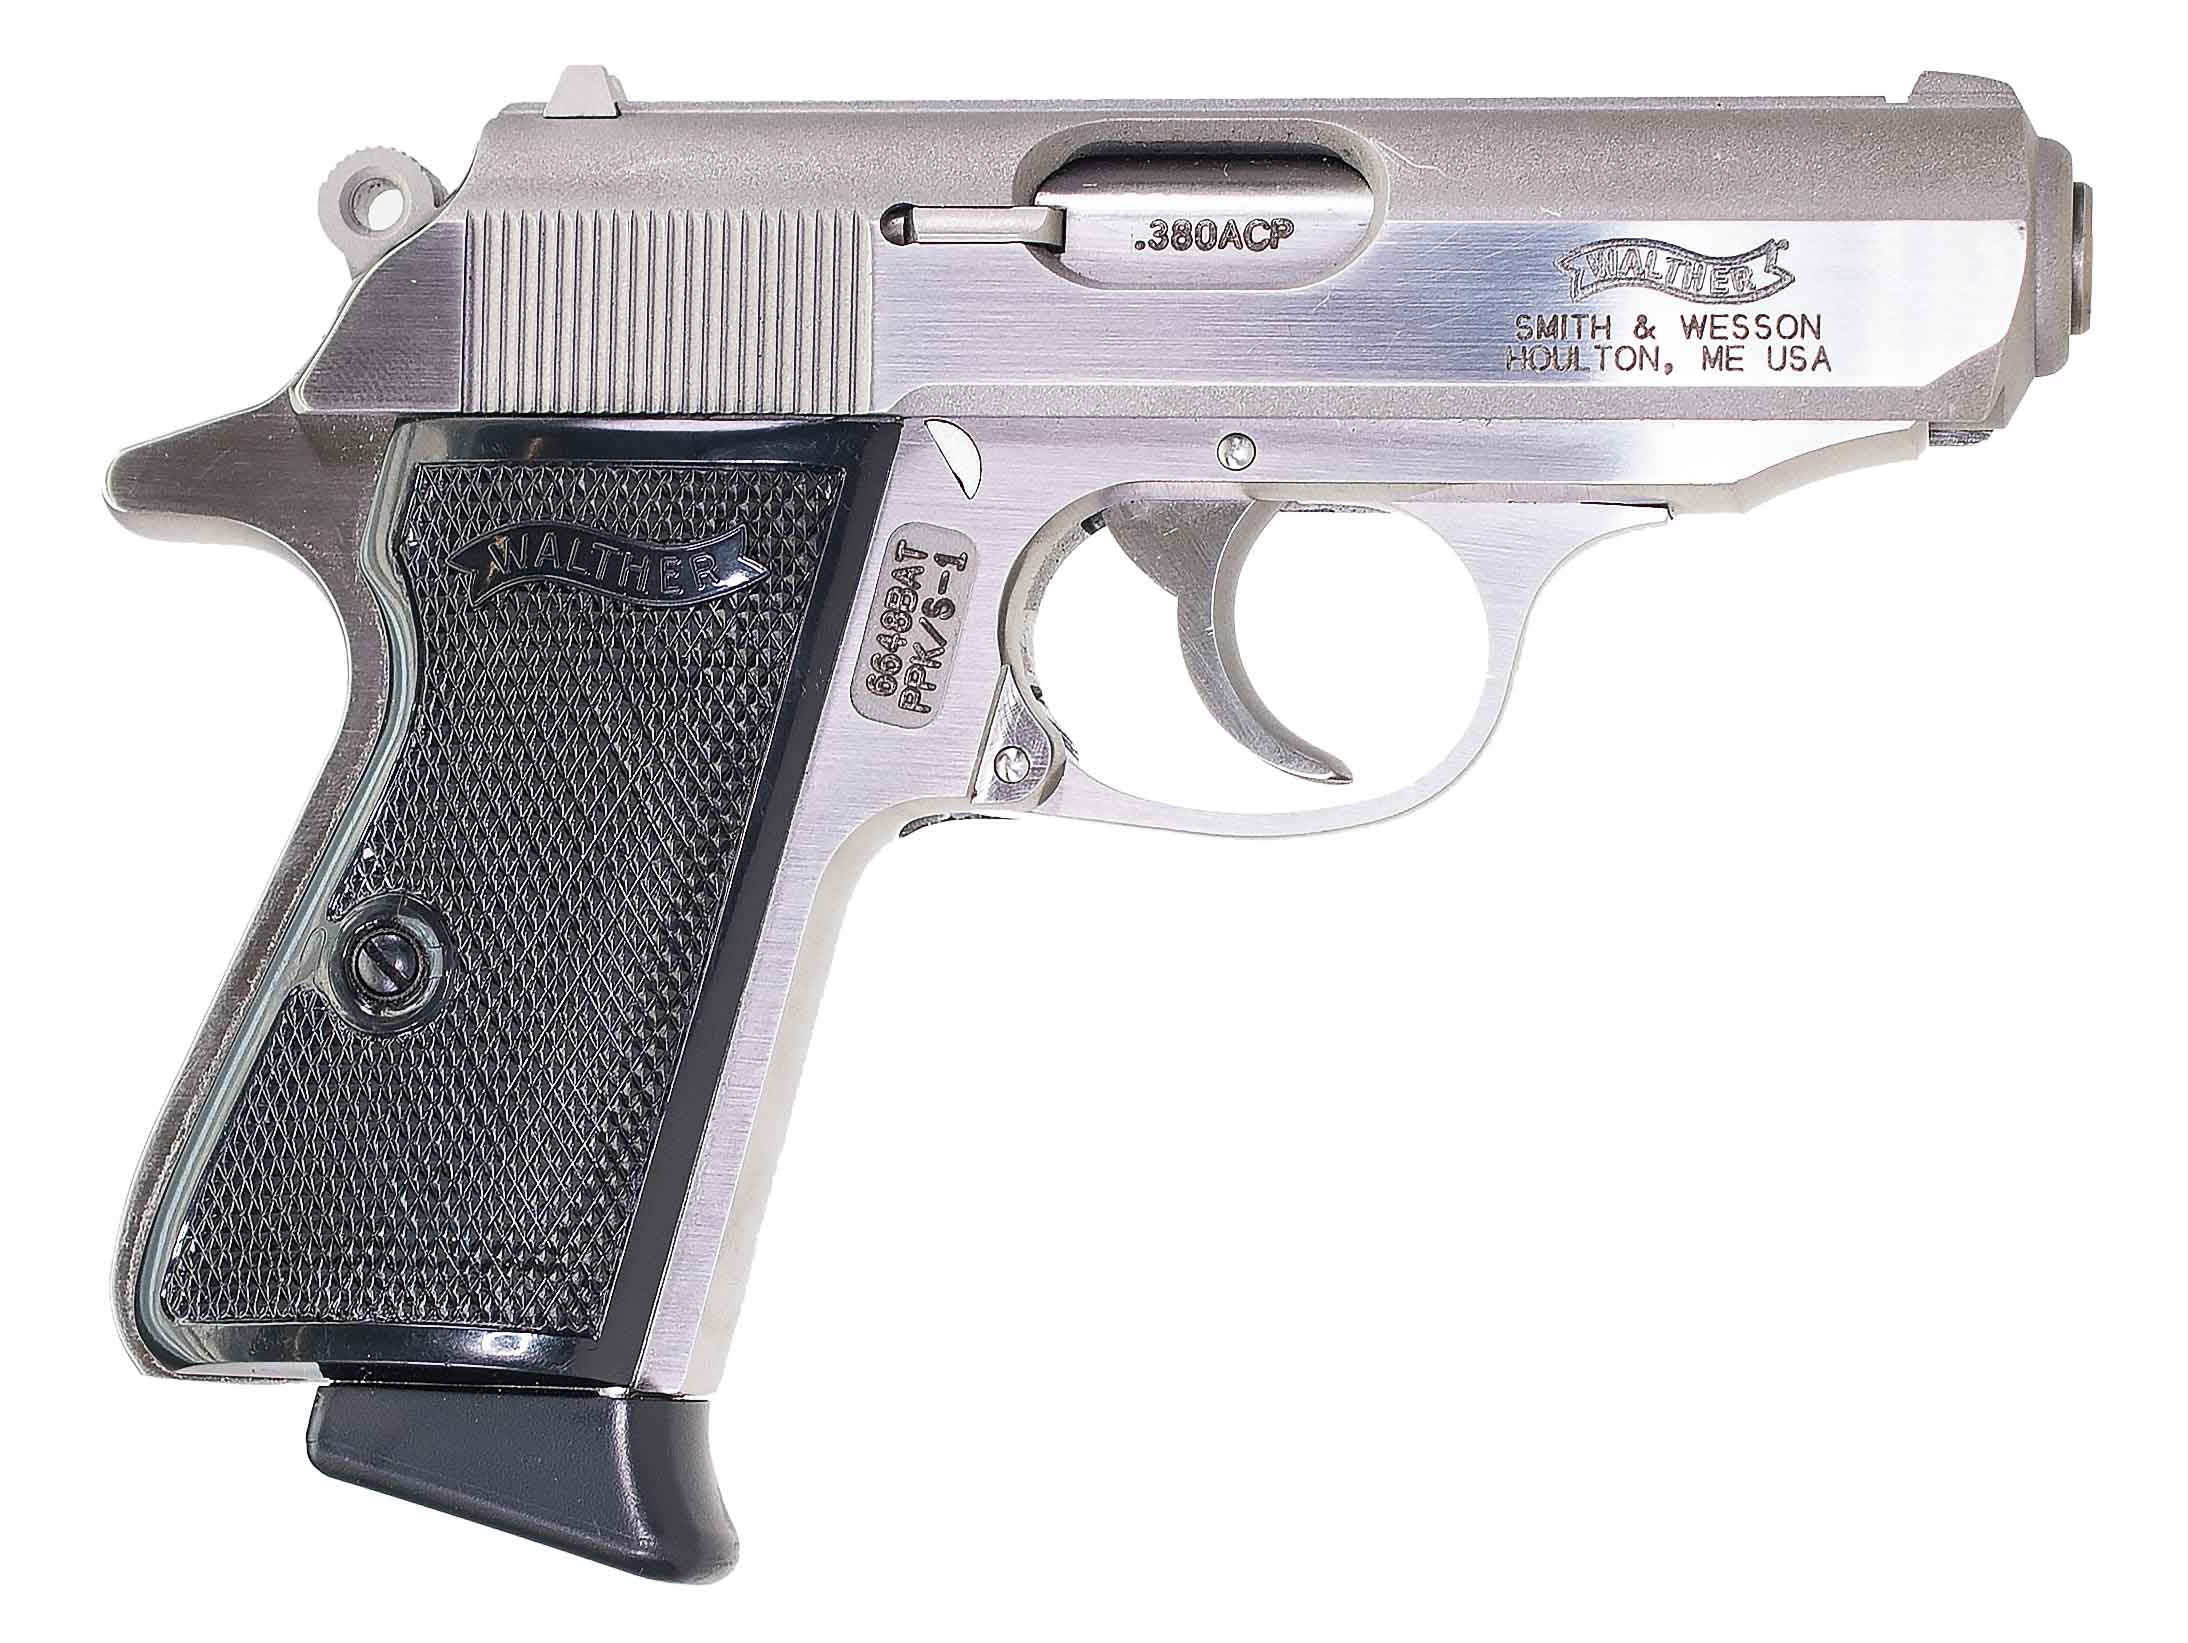 WALTHER PPK/S (Auction ID: 11296273, End Time : May  06